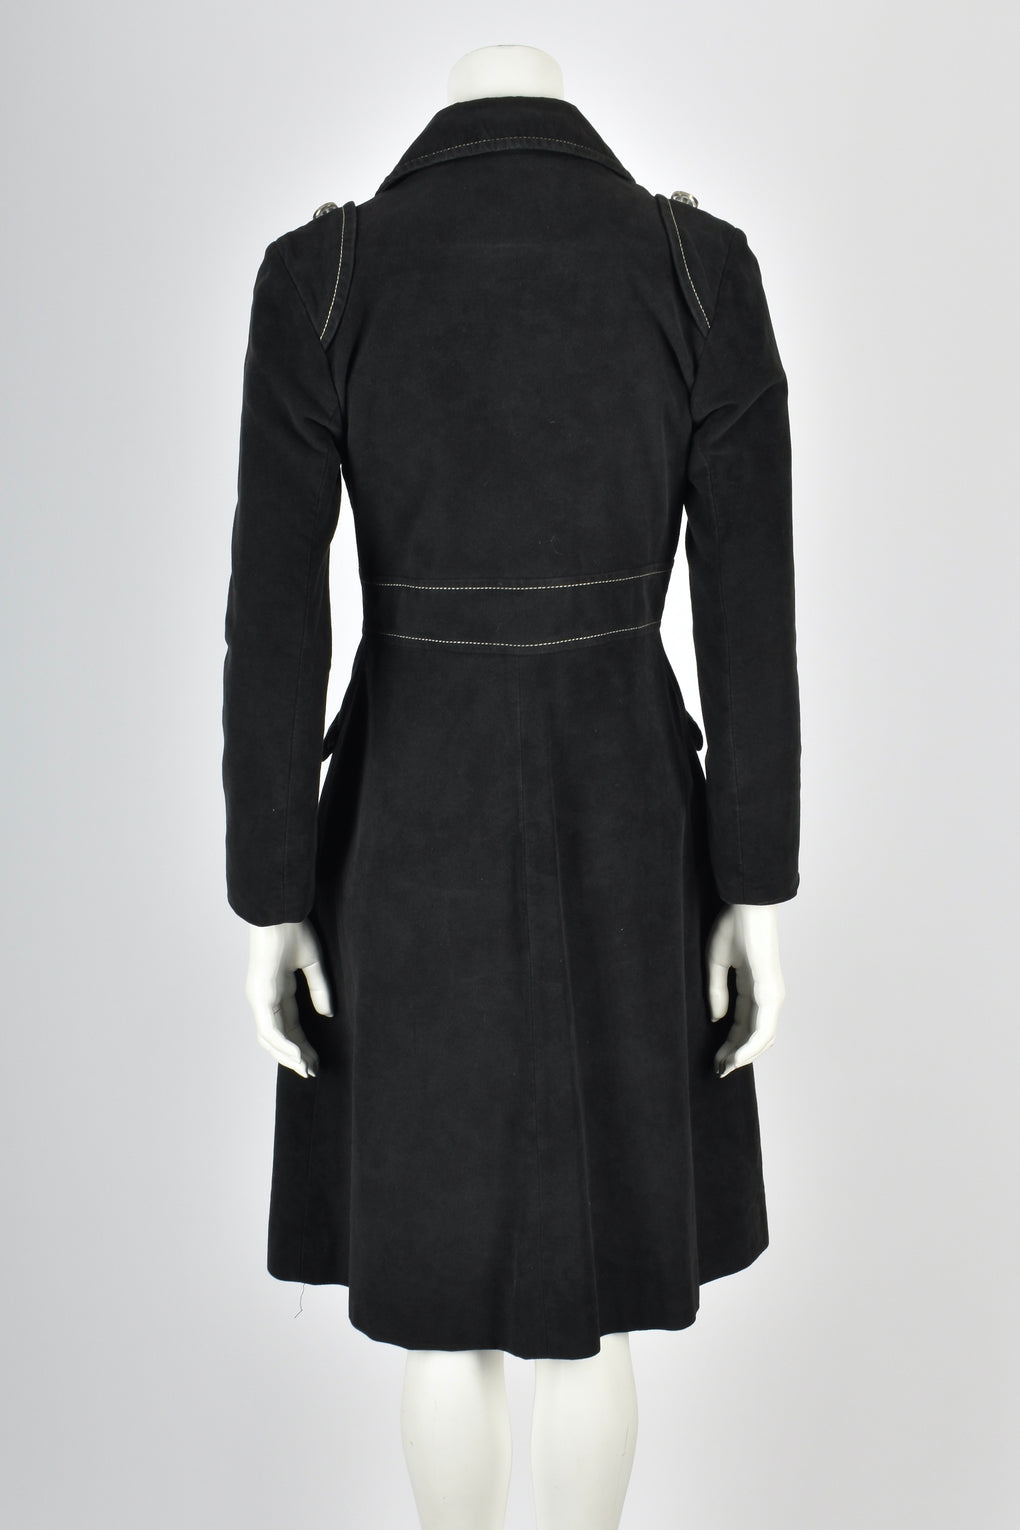 HARVEY GOULD 1960s coat S